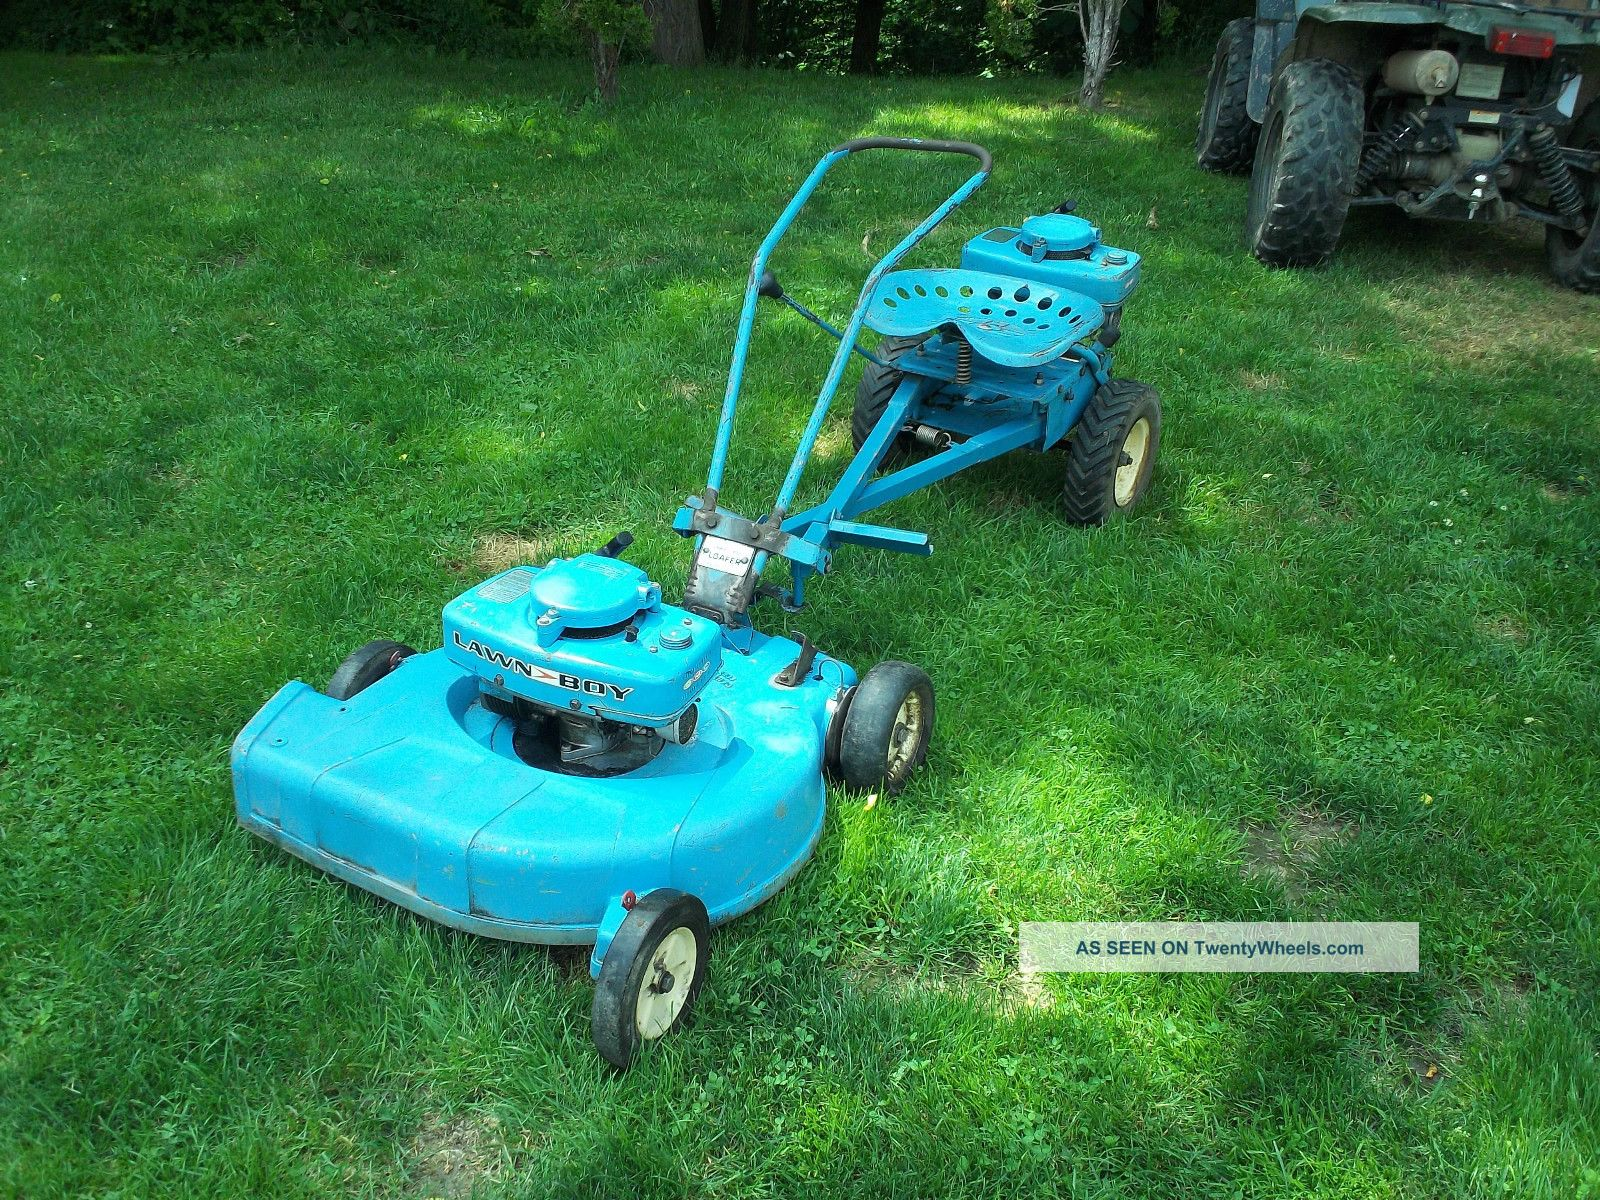 Old Riding Lawn Mowers : Lawn mowers tractors for sale riding electric push autos